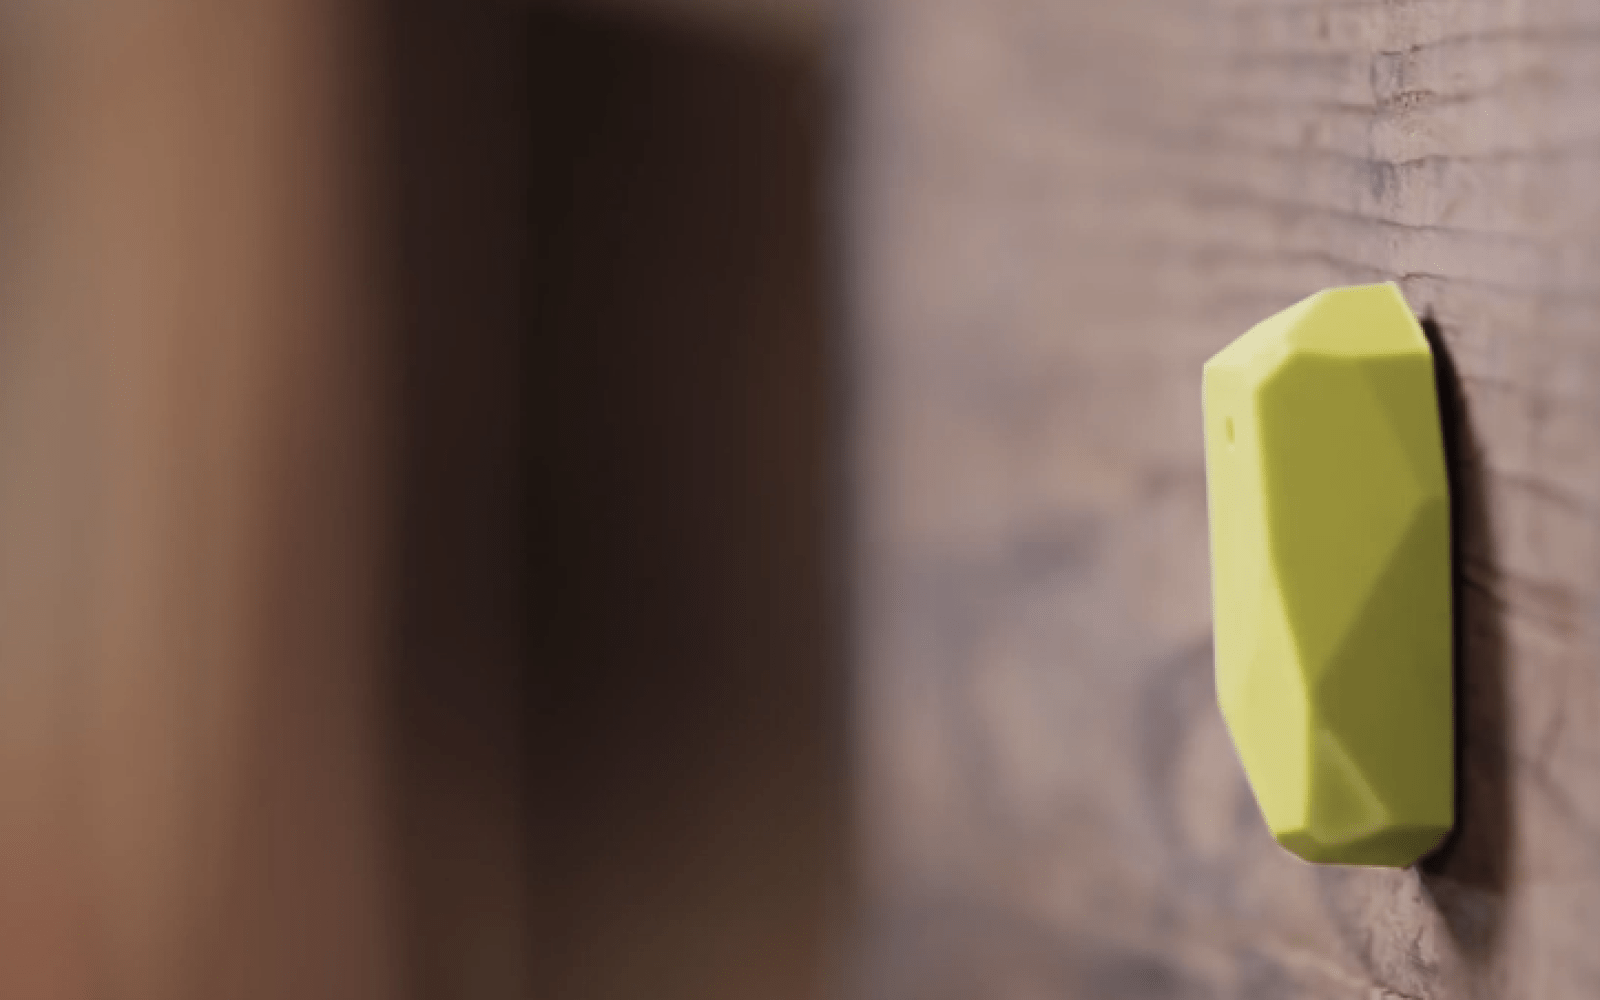 Estimote introduces iBeacon power management tools for extending battery life